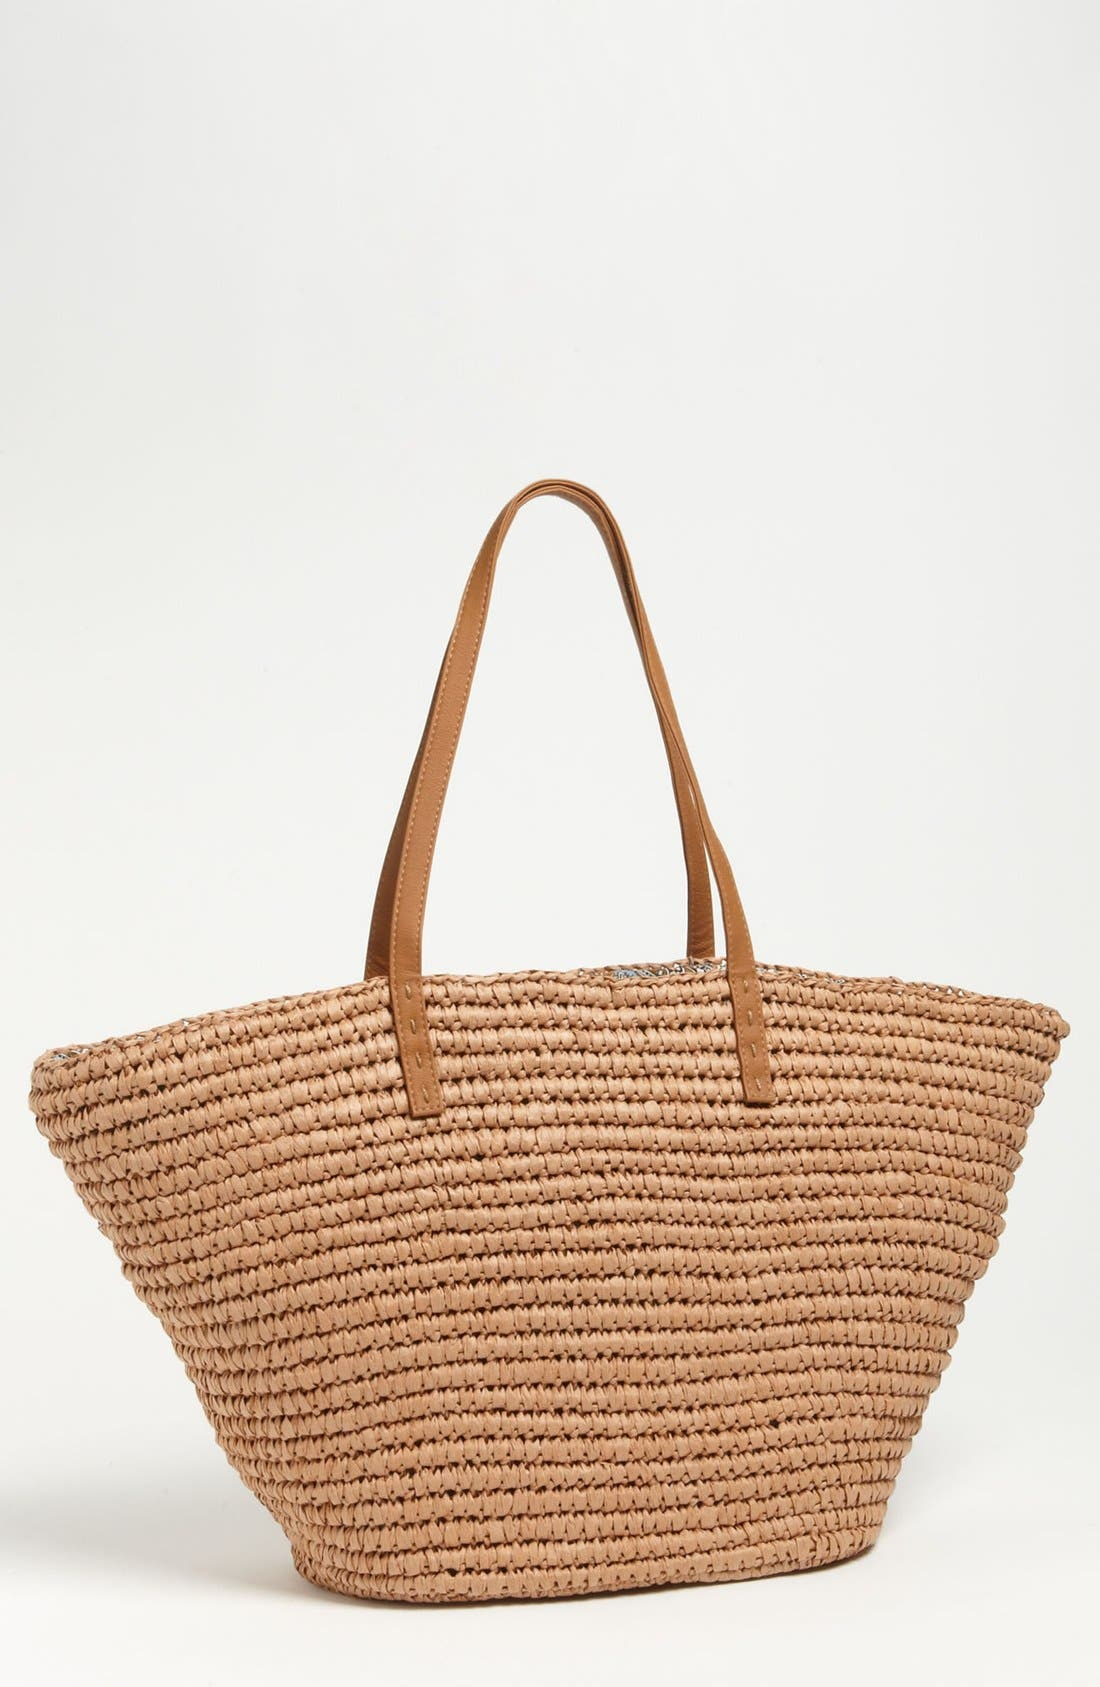 Alternate Image 1 Selected - Straw Studios 'Classic' Tote